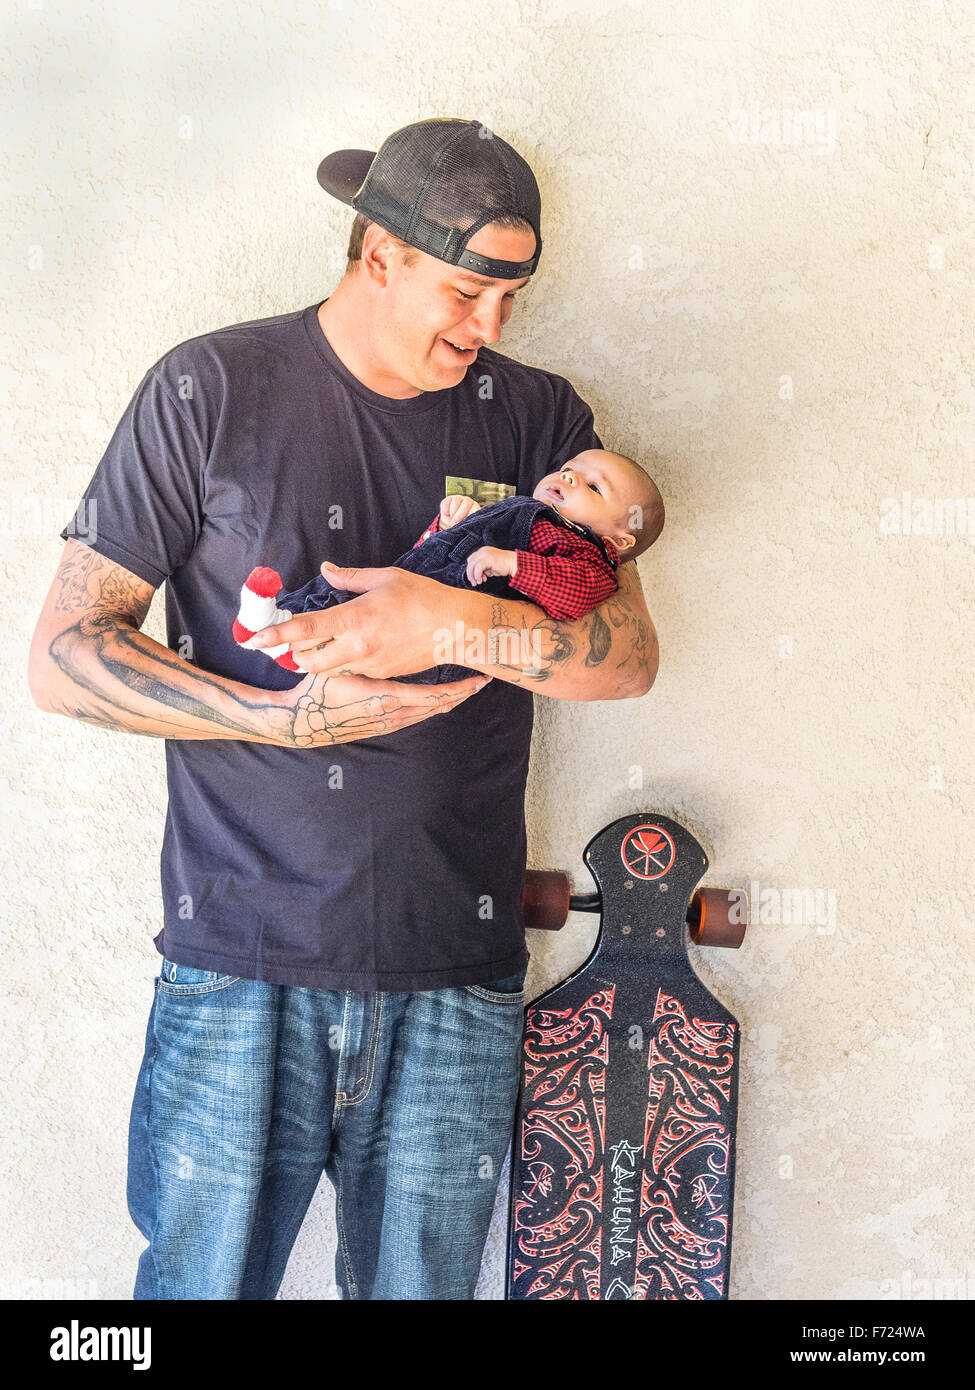 Skateboarding millennial father with tattoos holding his 2 1/2 month baby son and standing next to the dad's - Stock Image